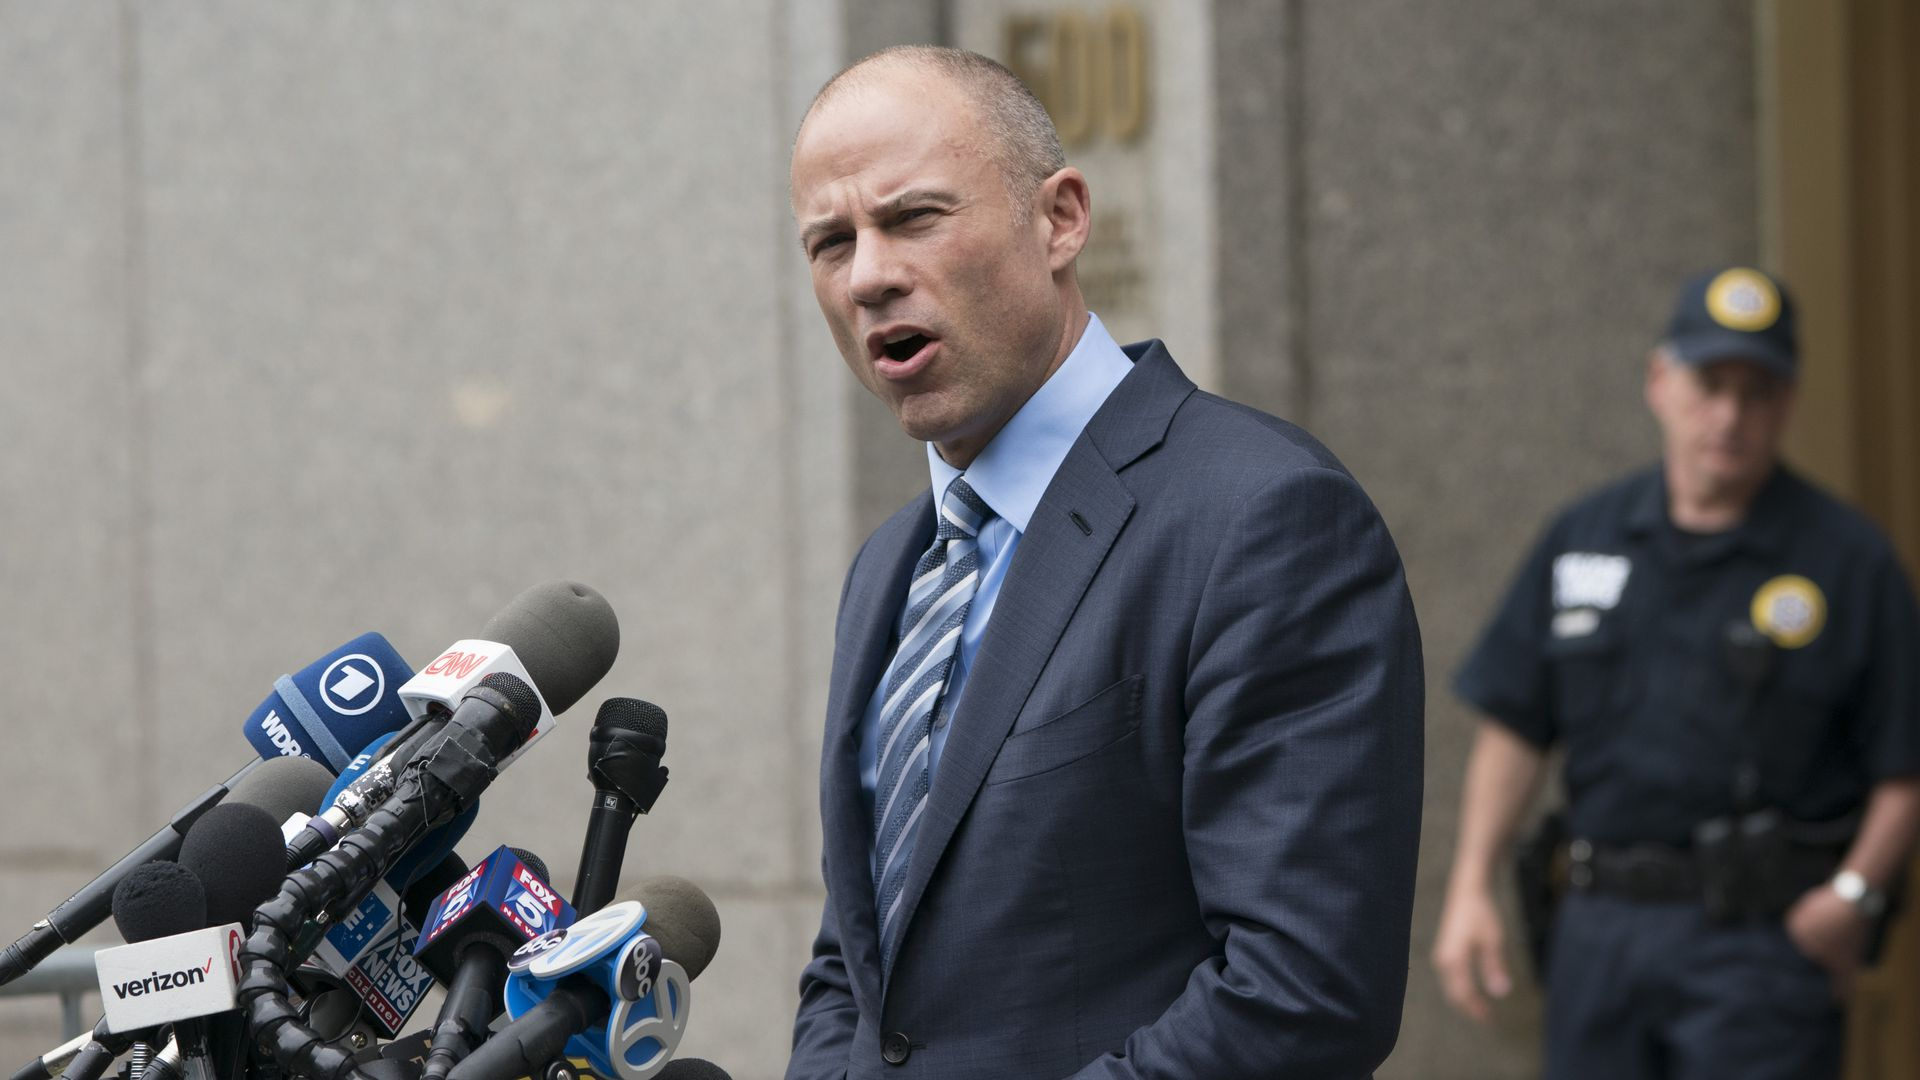 Michael Avenatti. Photo: Don Emmert/AFP/Getty Images